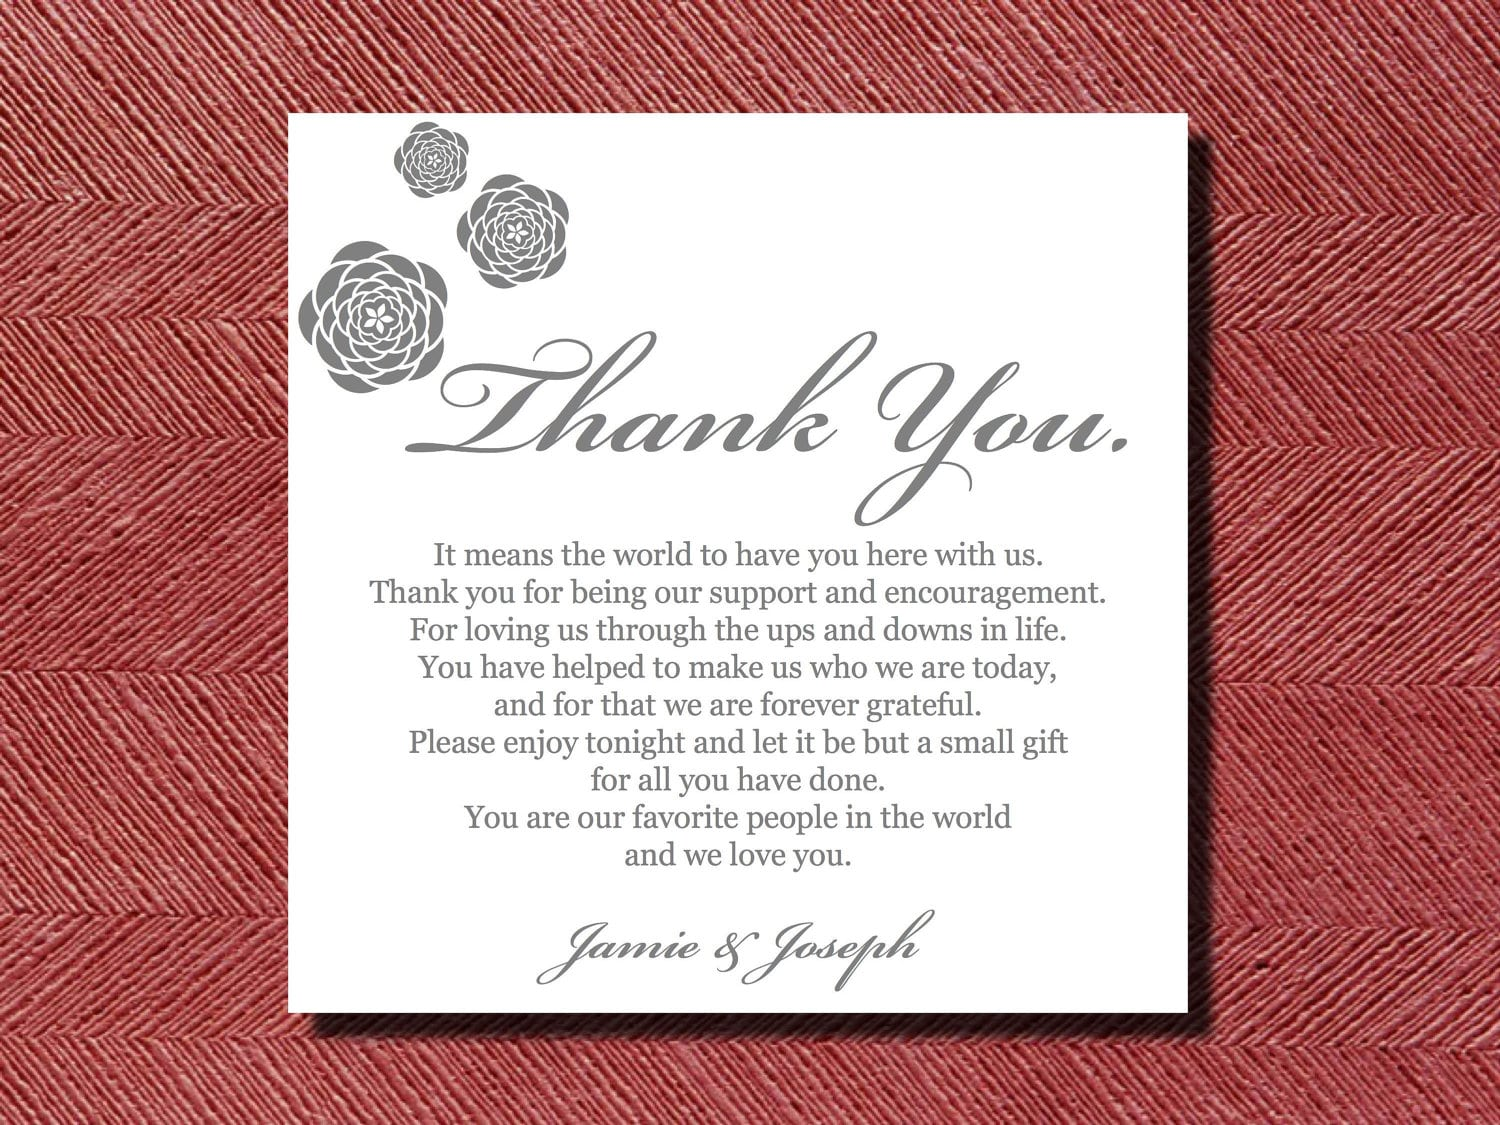 Wedding Reception Thank You Place Setting Card